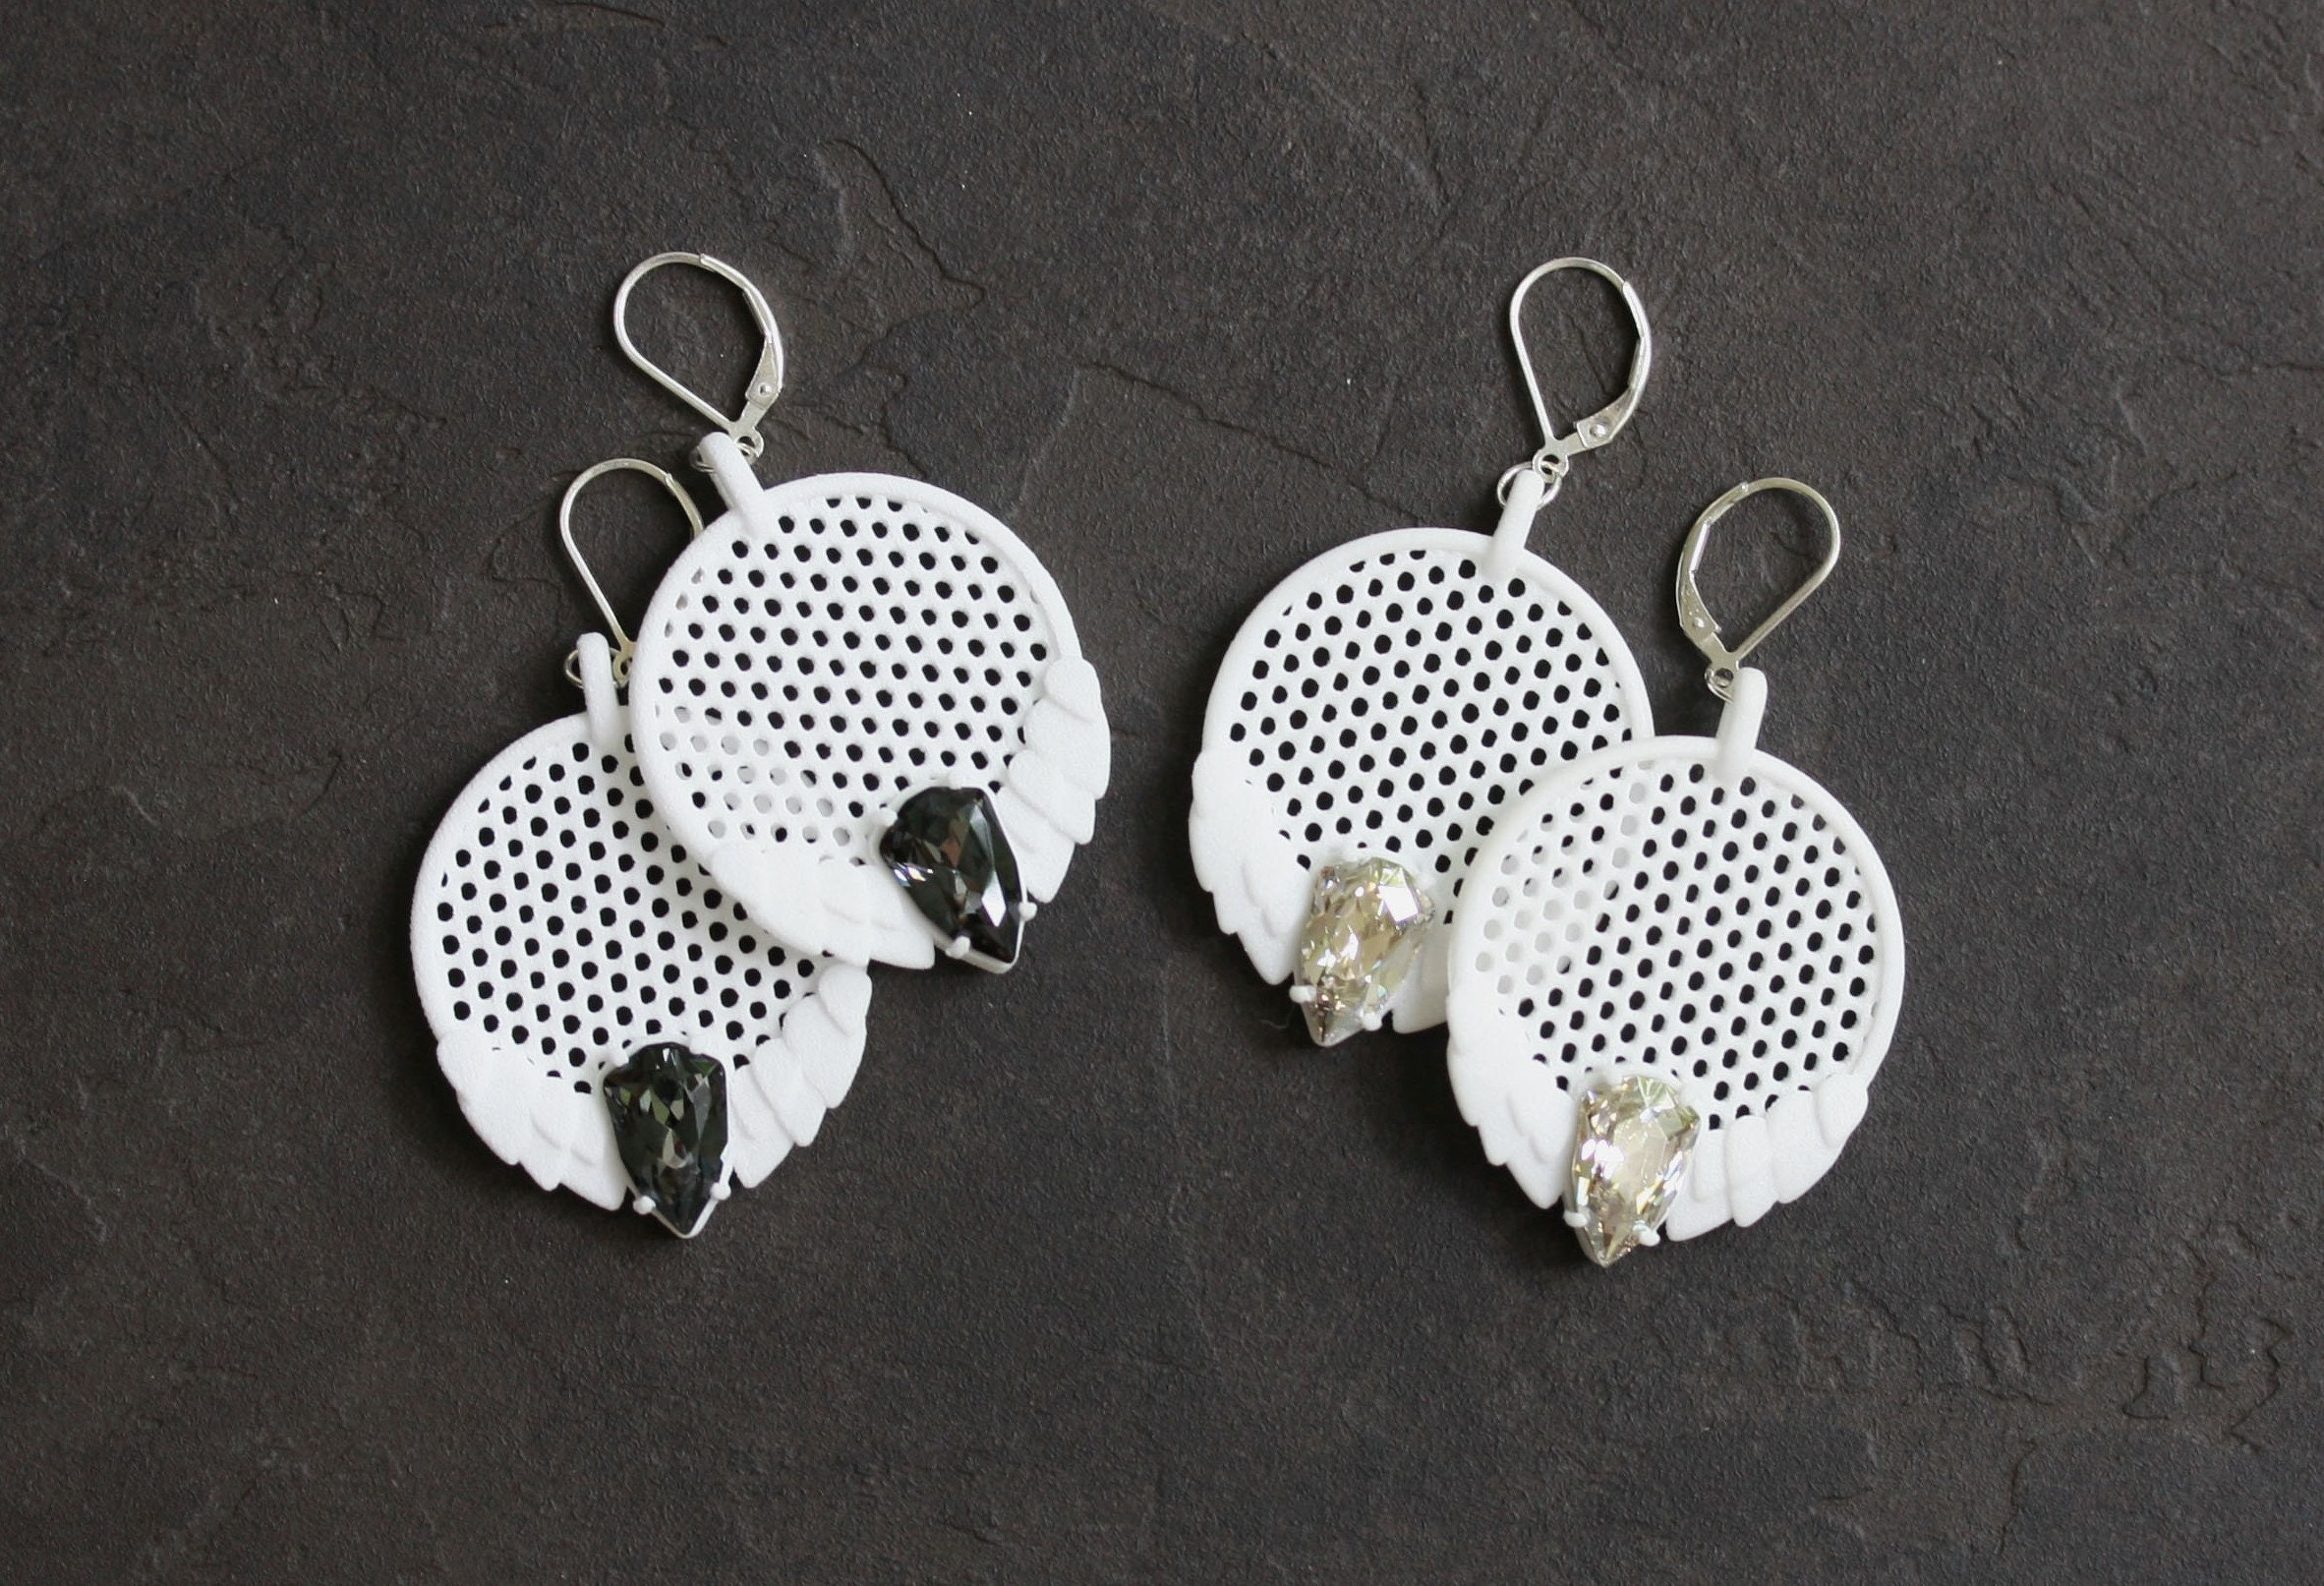 3D Printed White Earrings with Swarovski Crystals